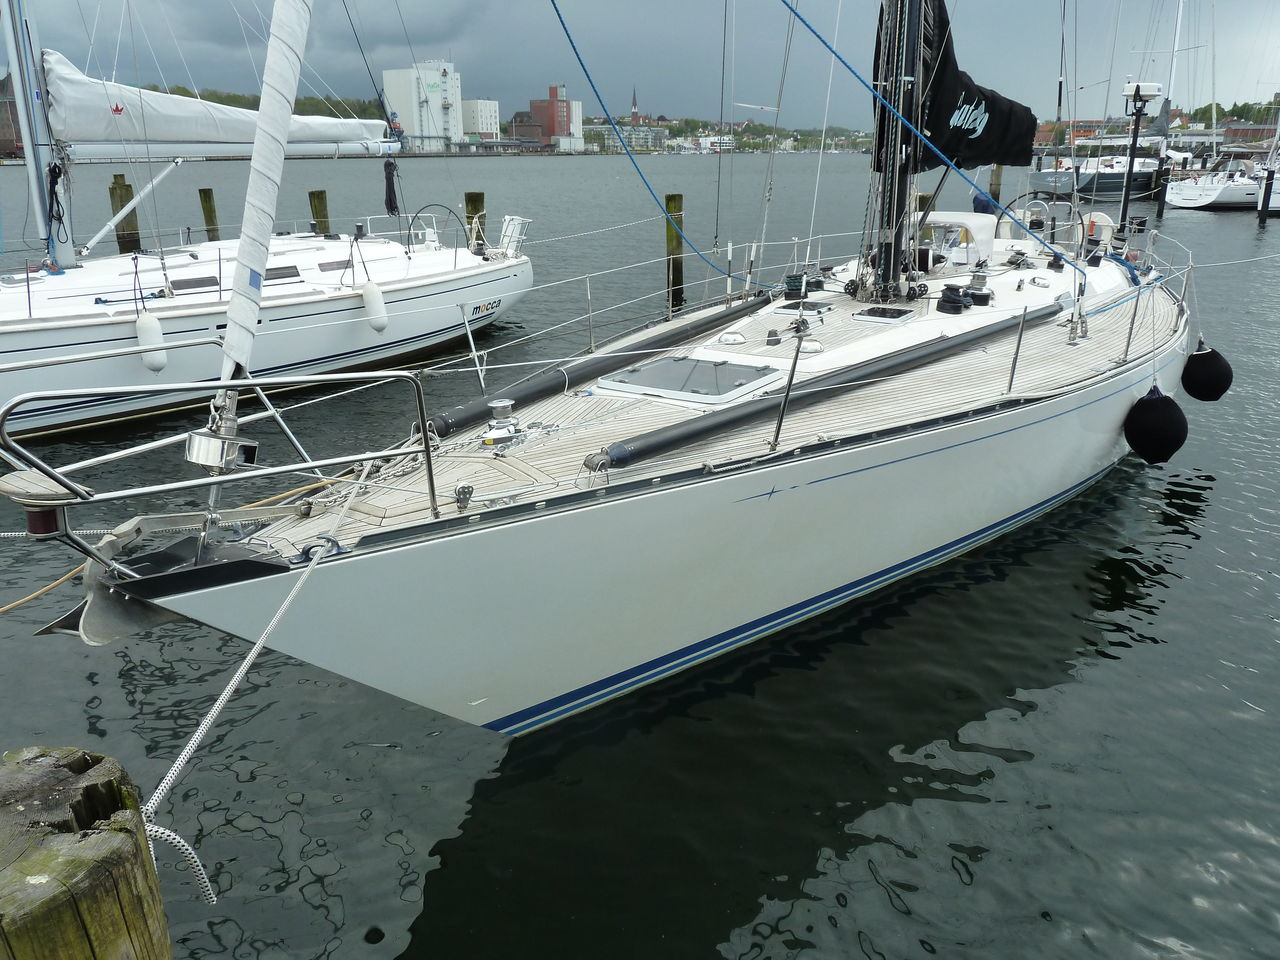 Baltic 51 - fotka 1